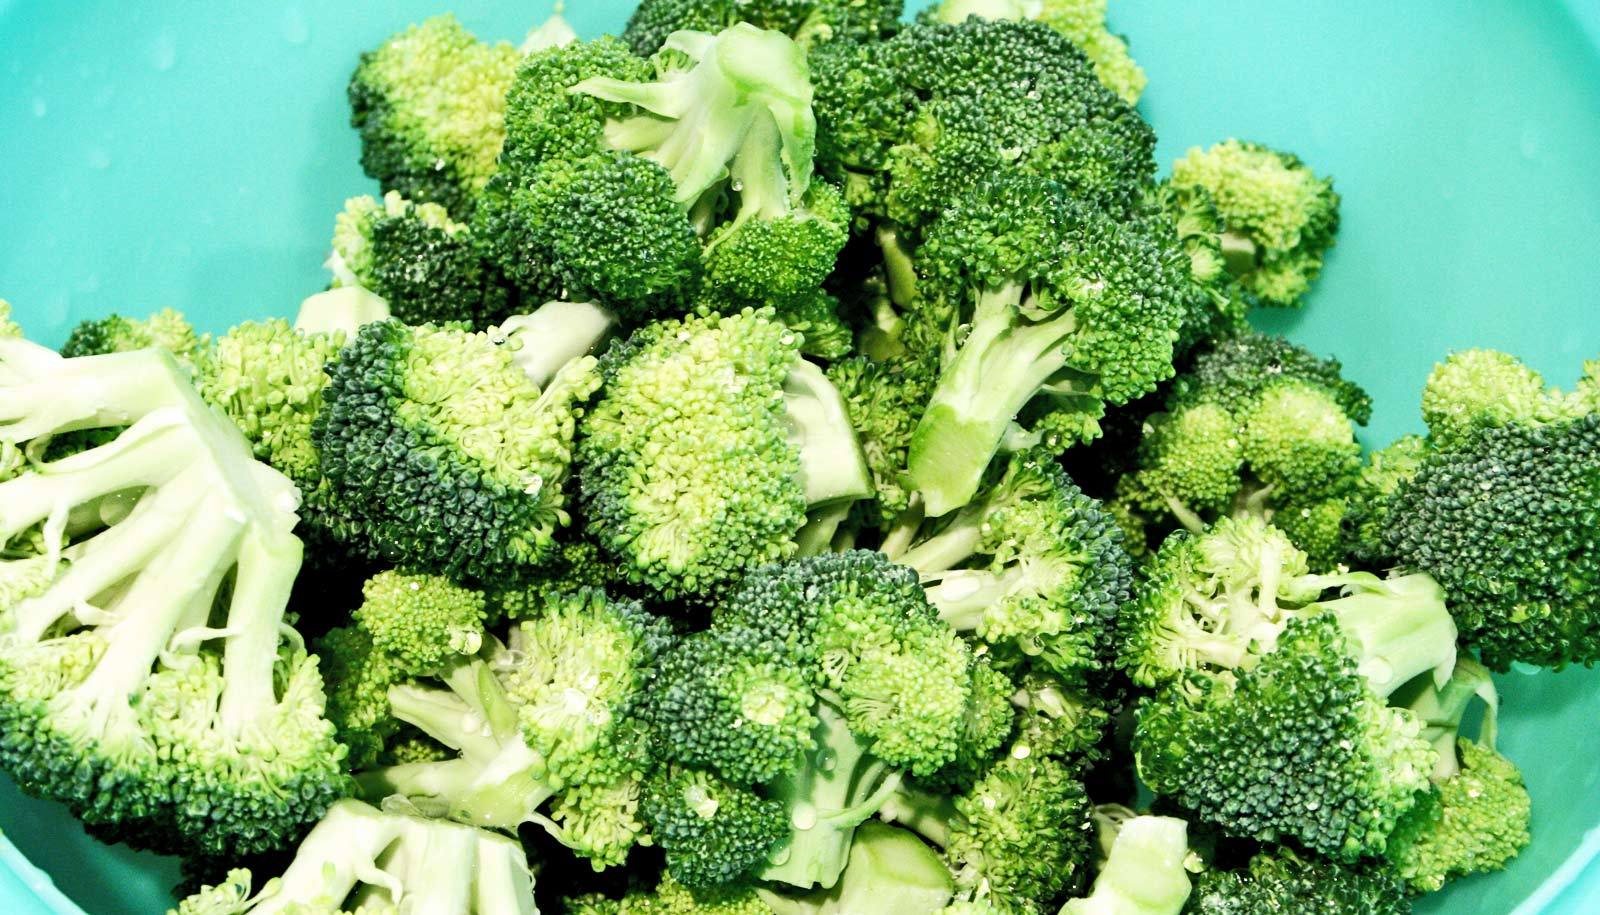 Why broccoli and cabbage are so bitter